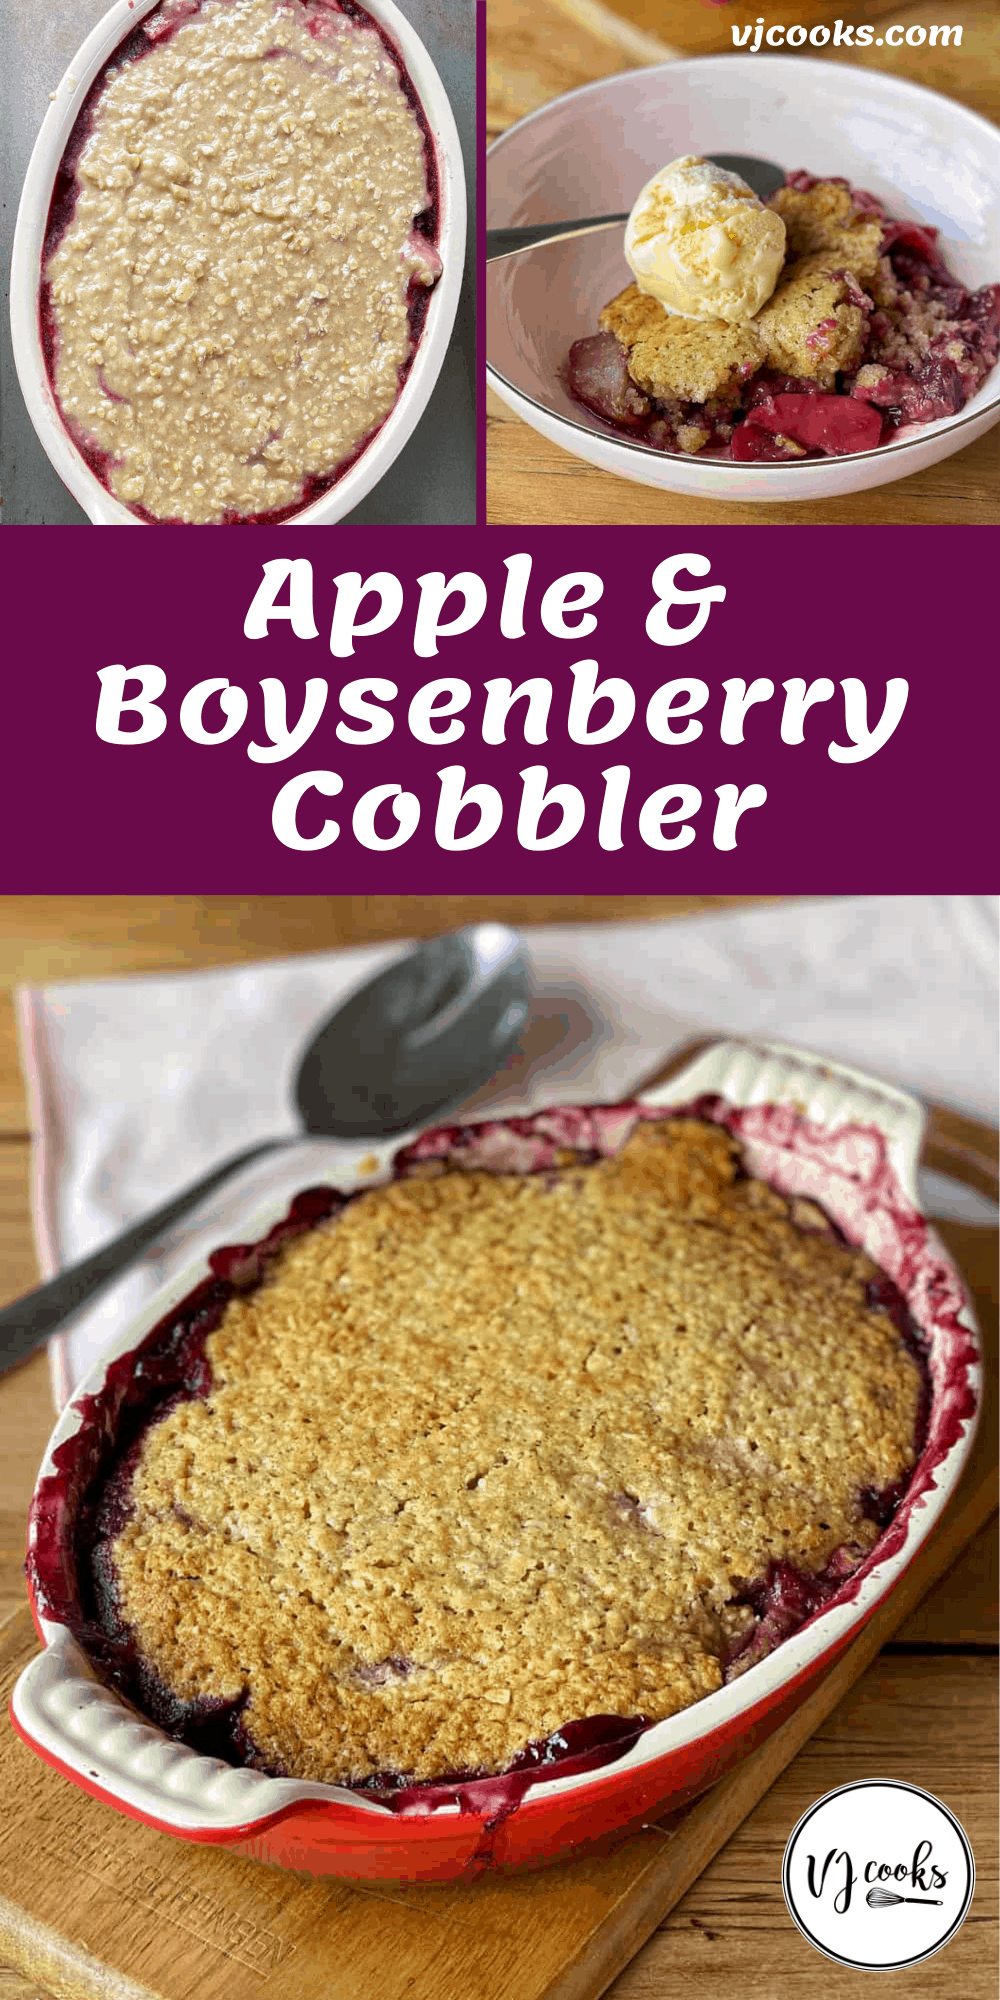 Apple and boysenberry cobbler